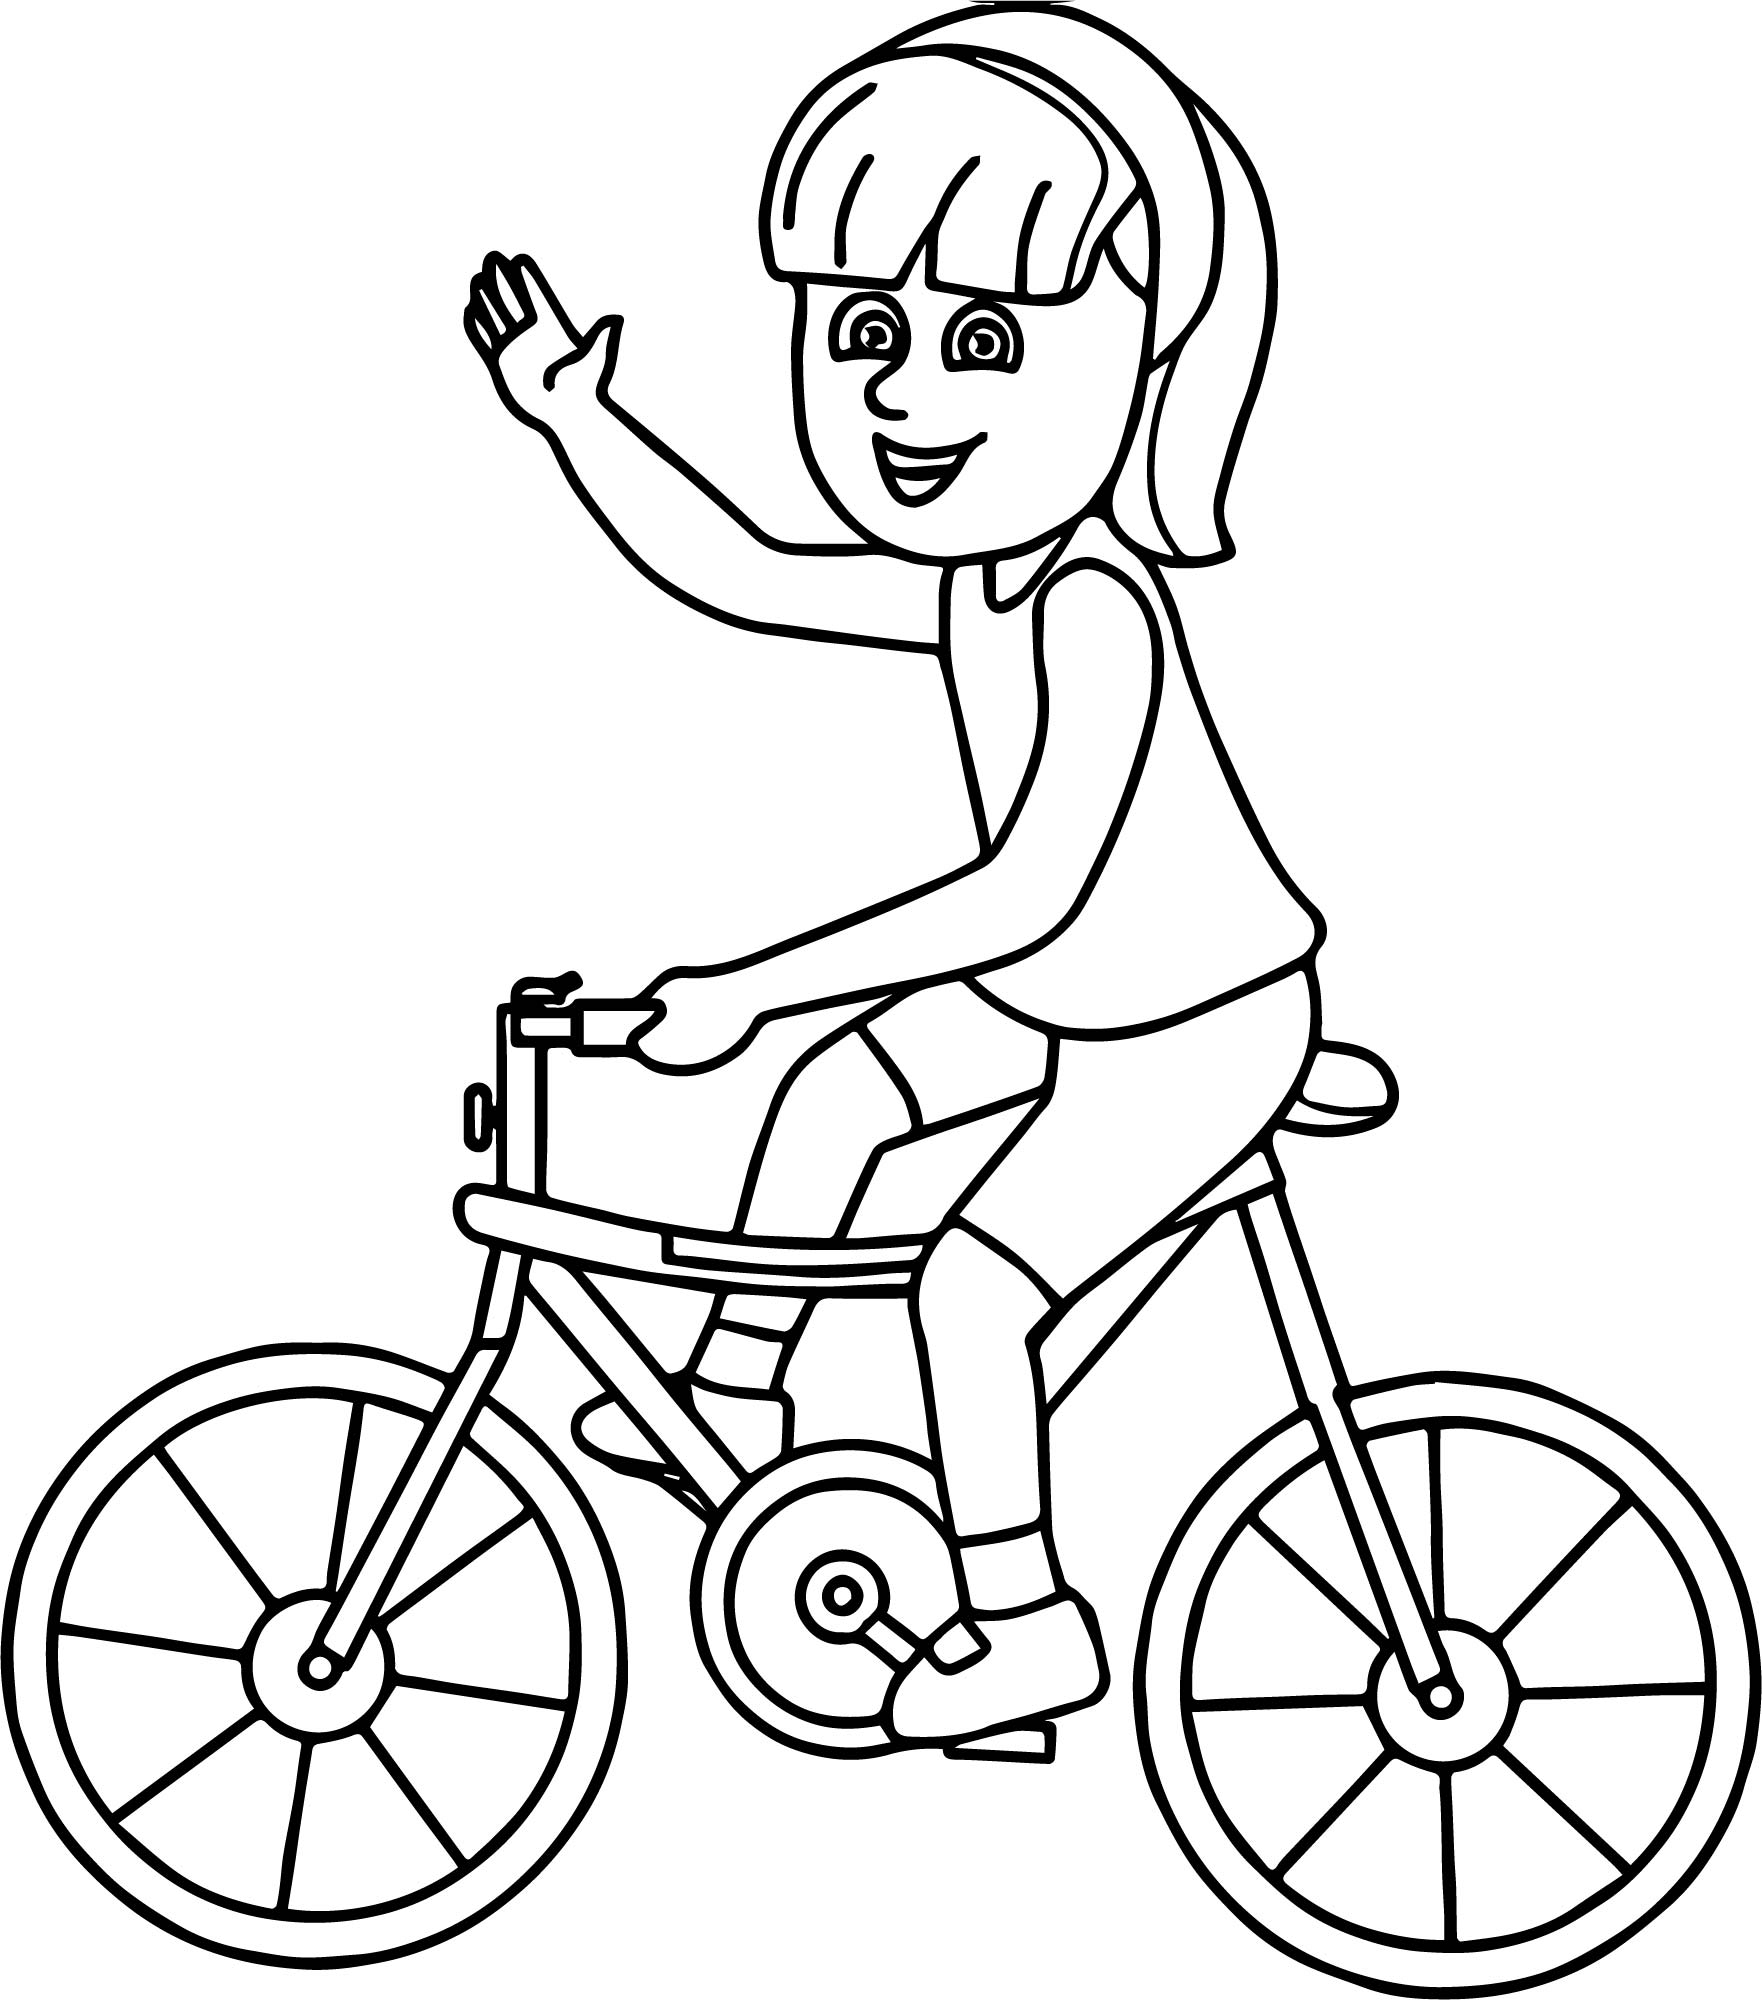 bmx coloring pages bmx silhouette at getdrawings free download pages coloring bmx